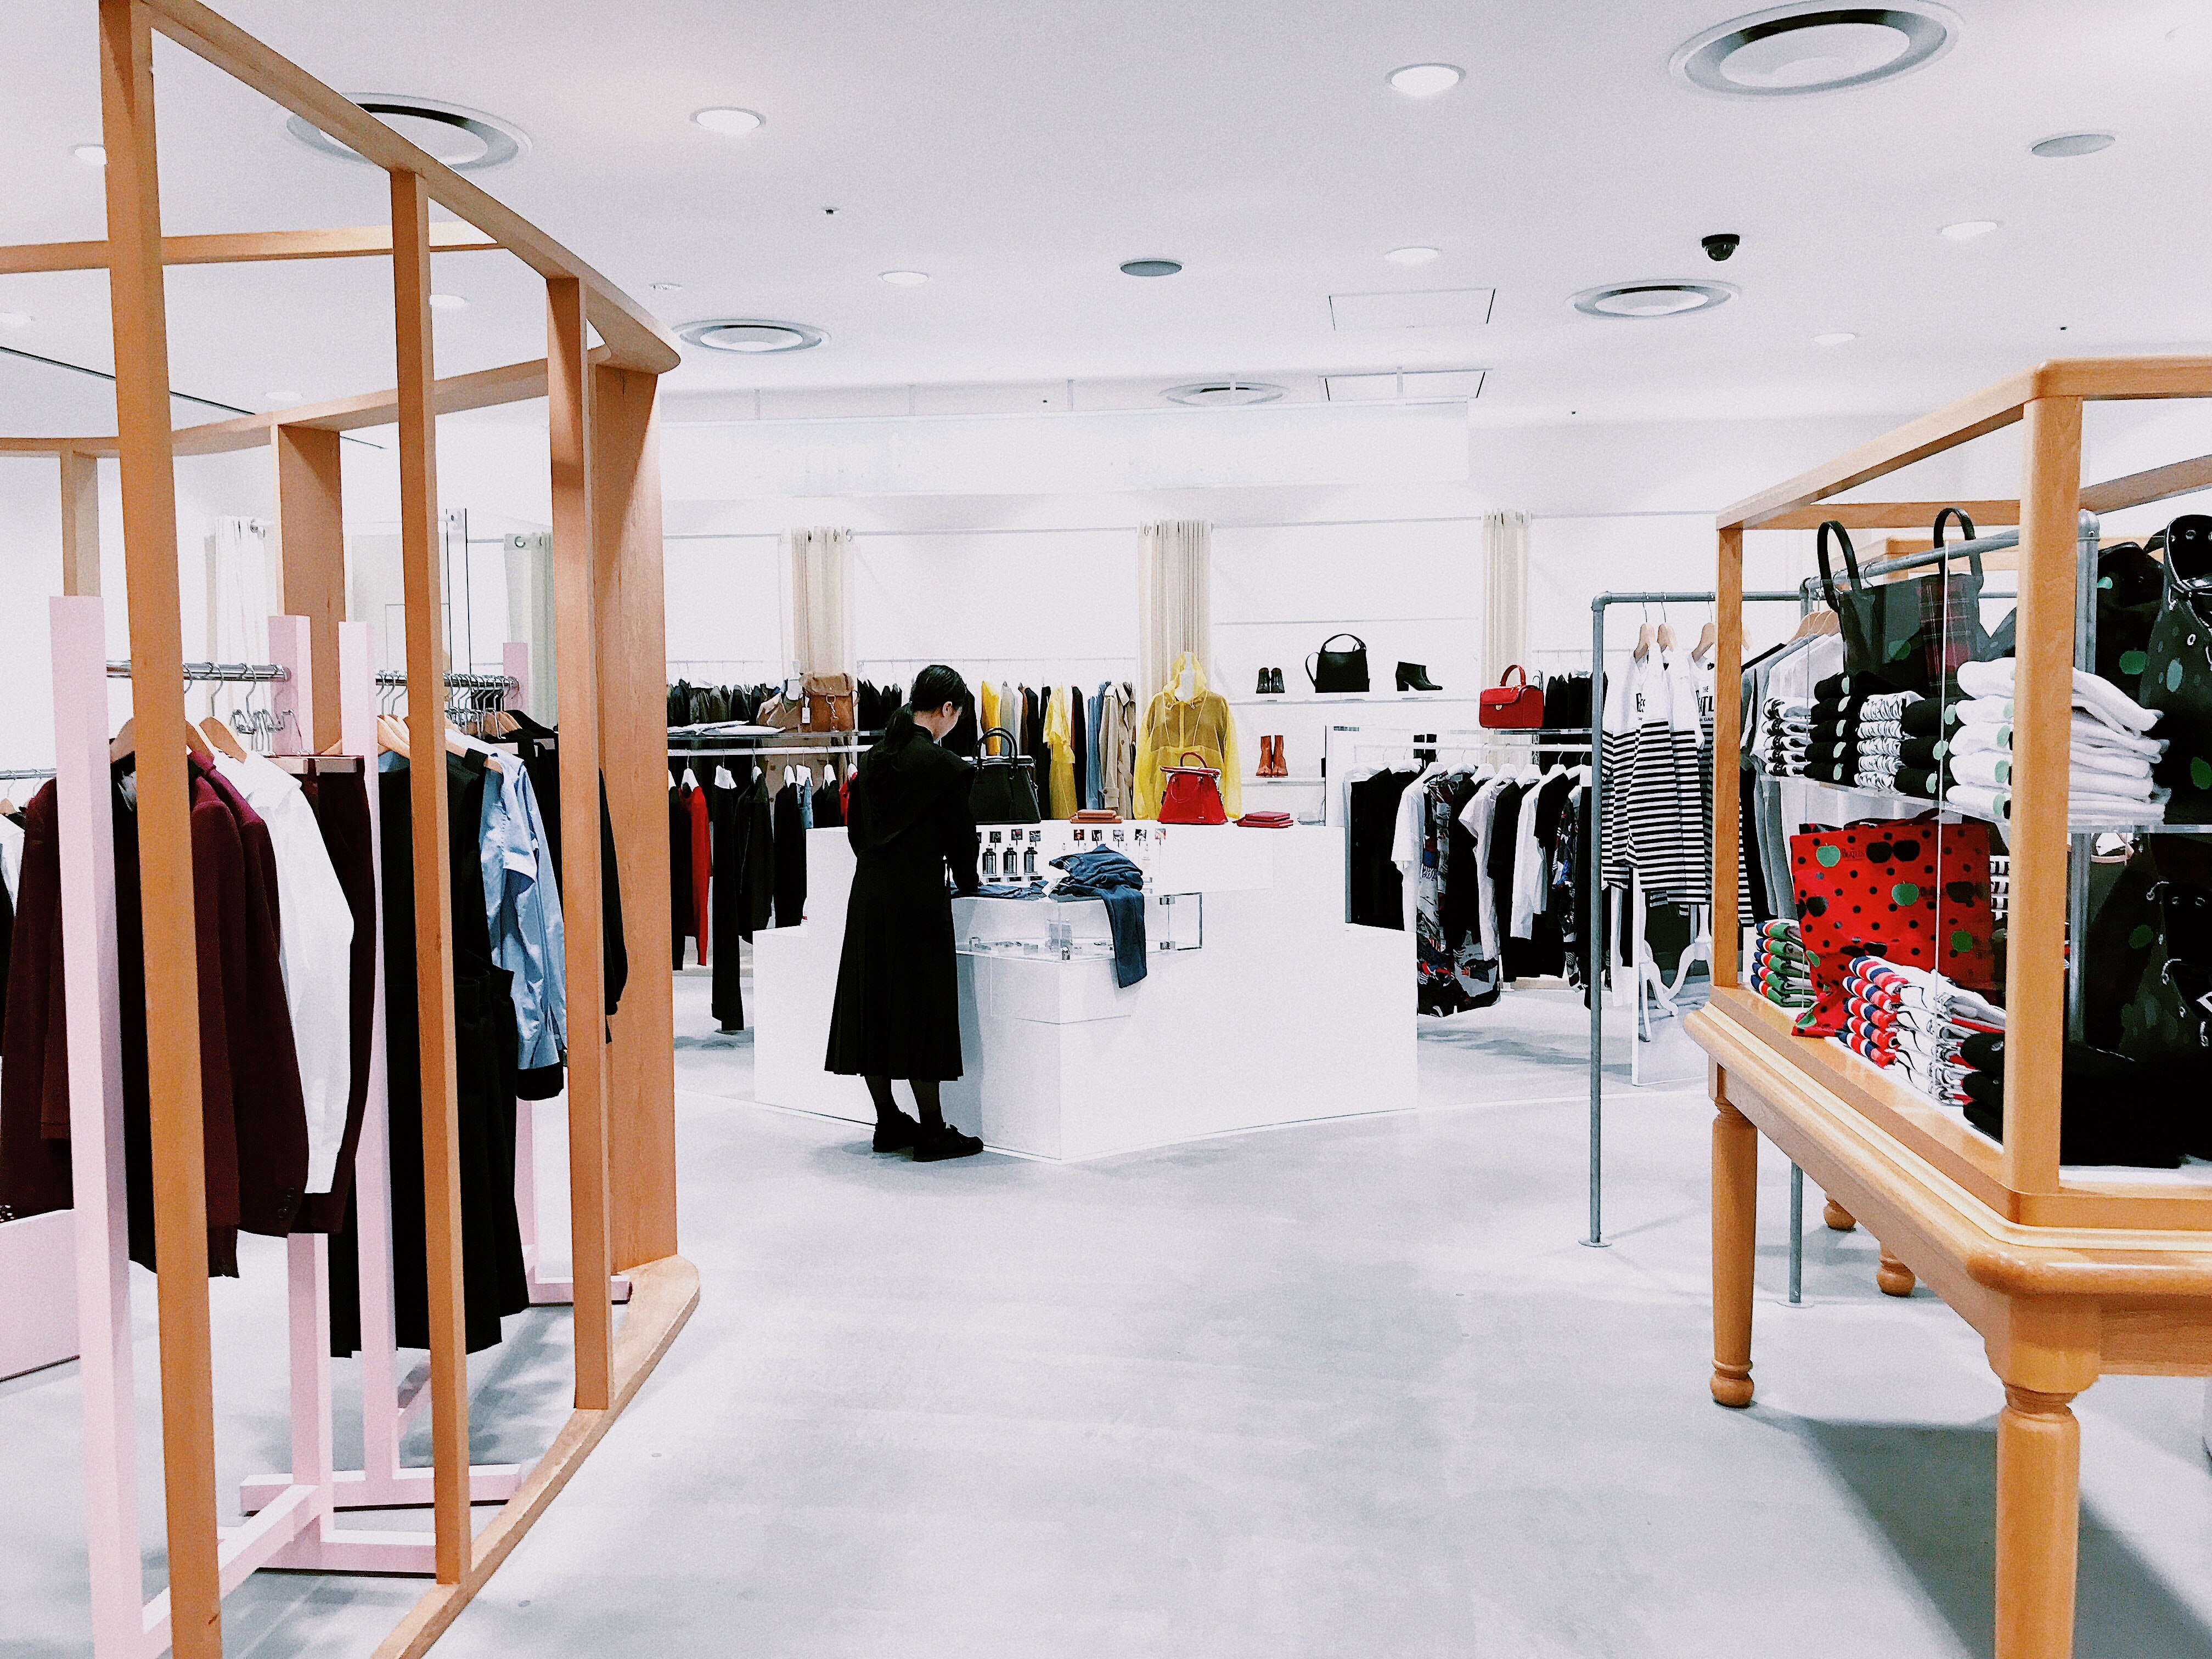 A picture of a clothing store with wide, light spaces, some clothing racks on the side and a person in the background at a counter